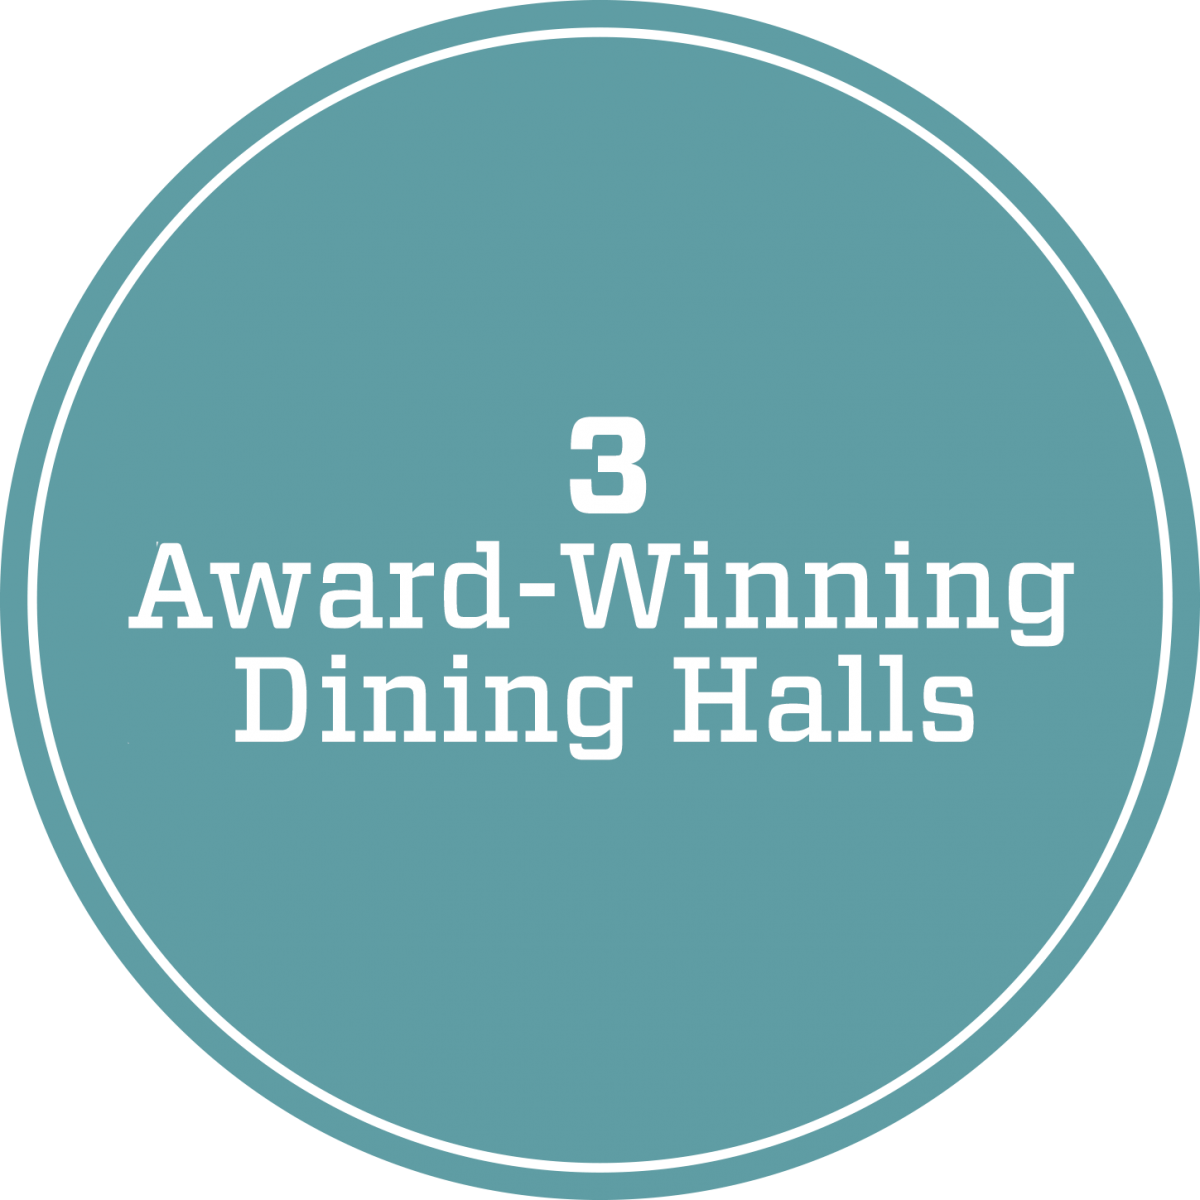 3 award-winning dining halls